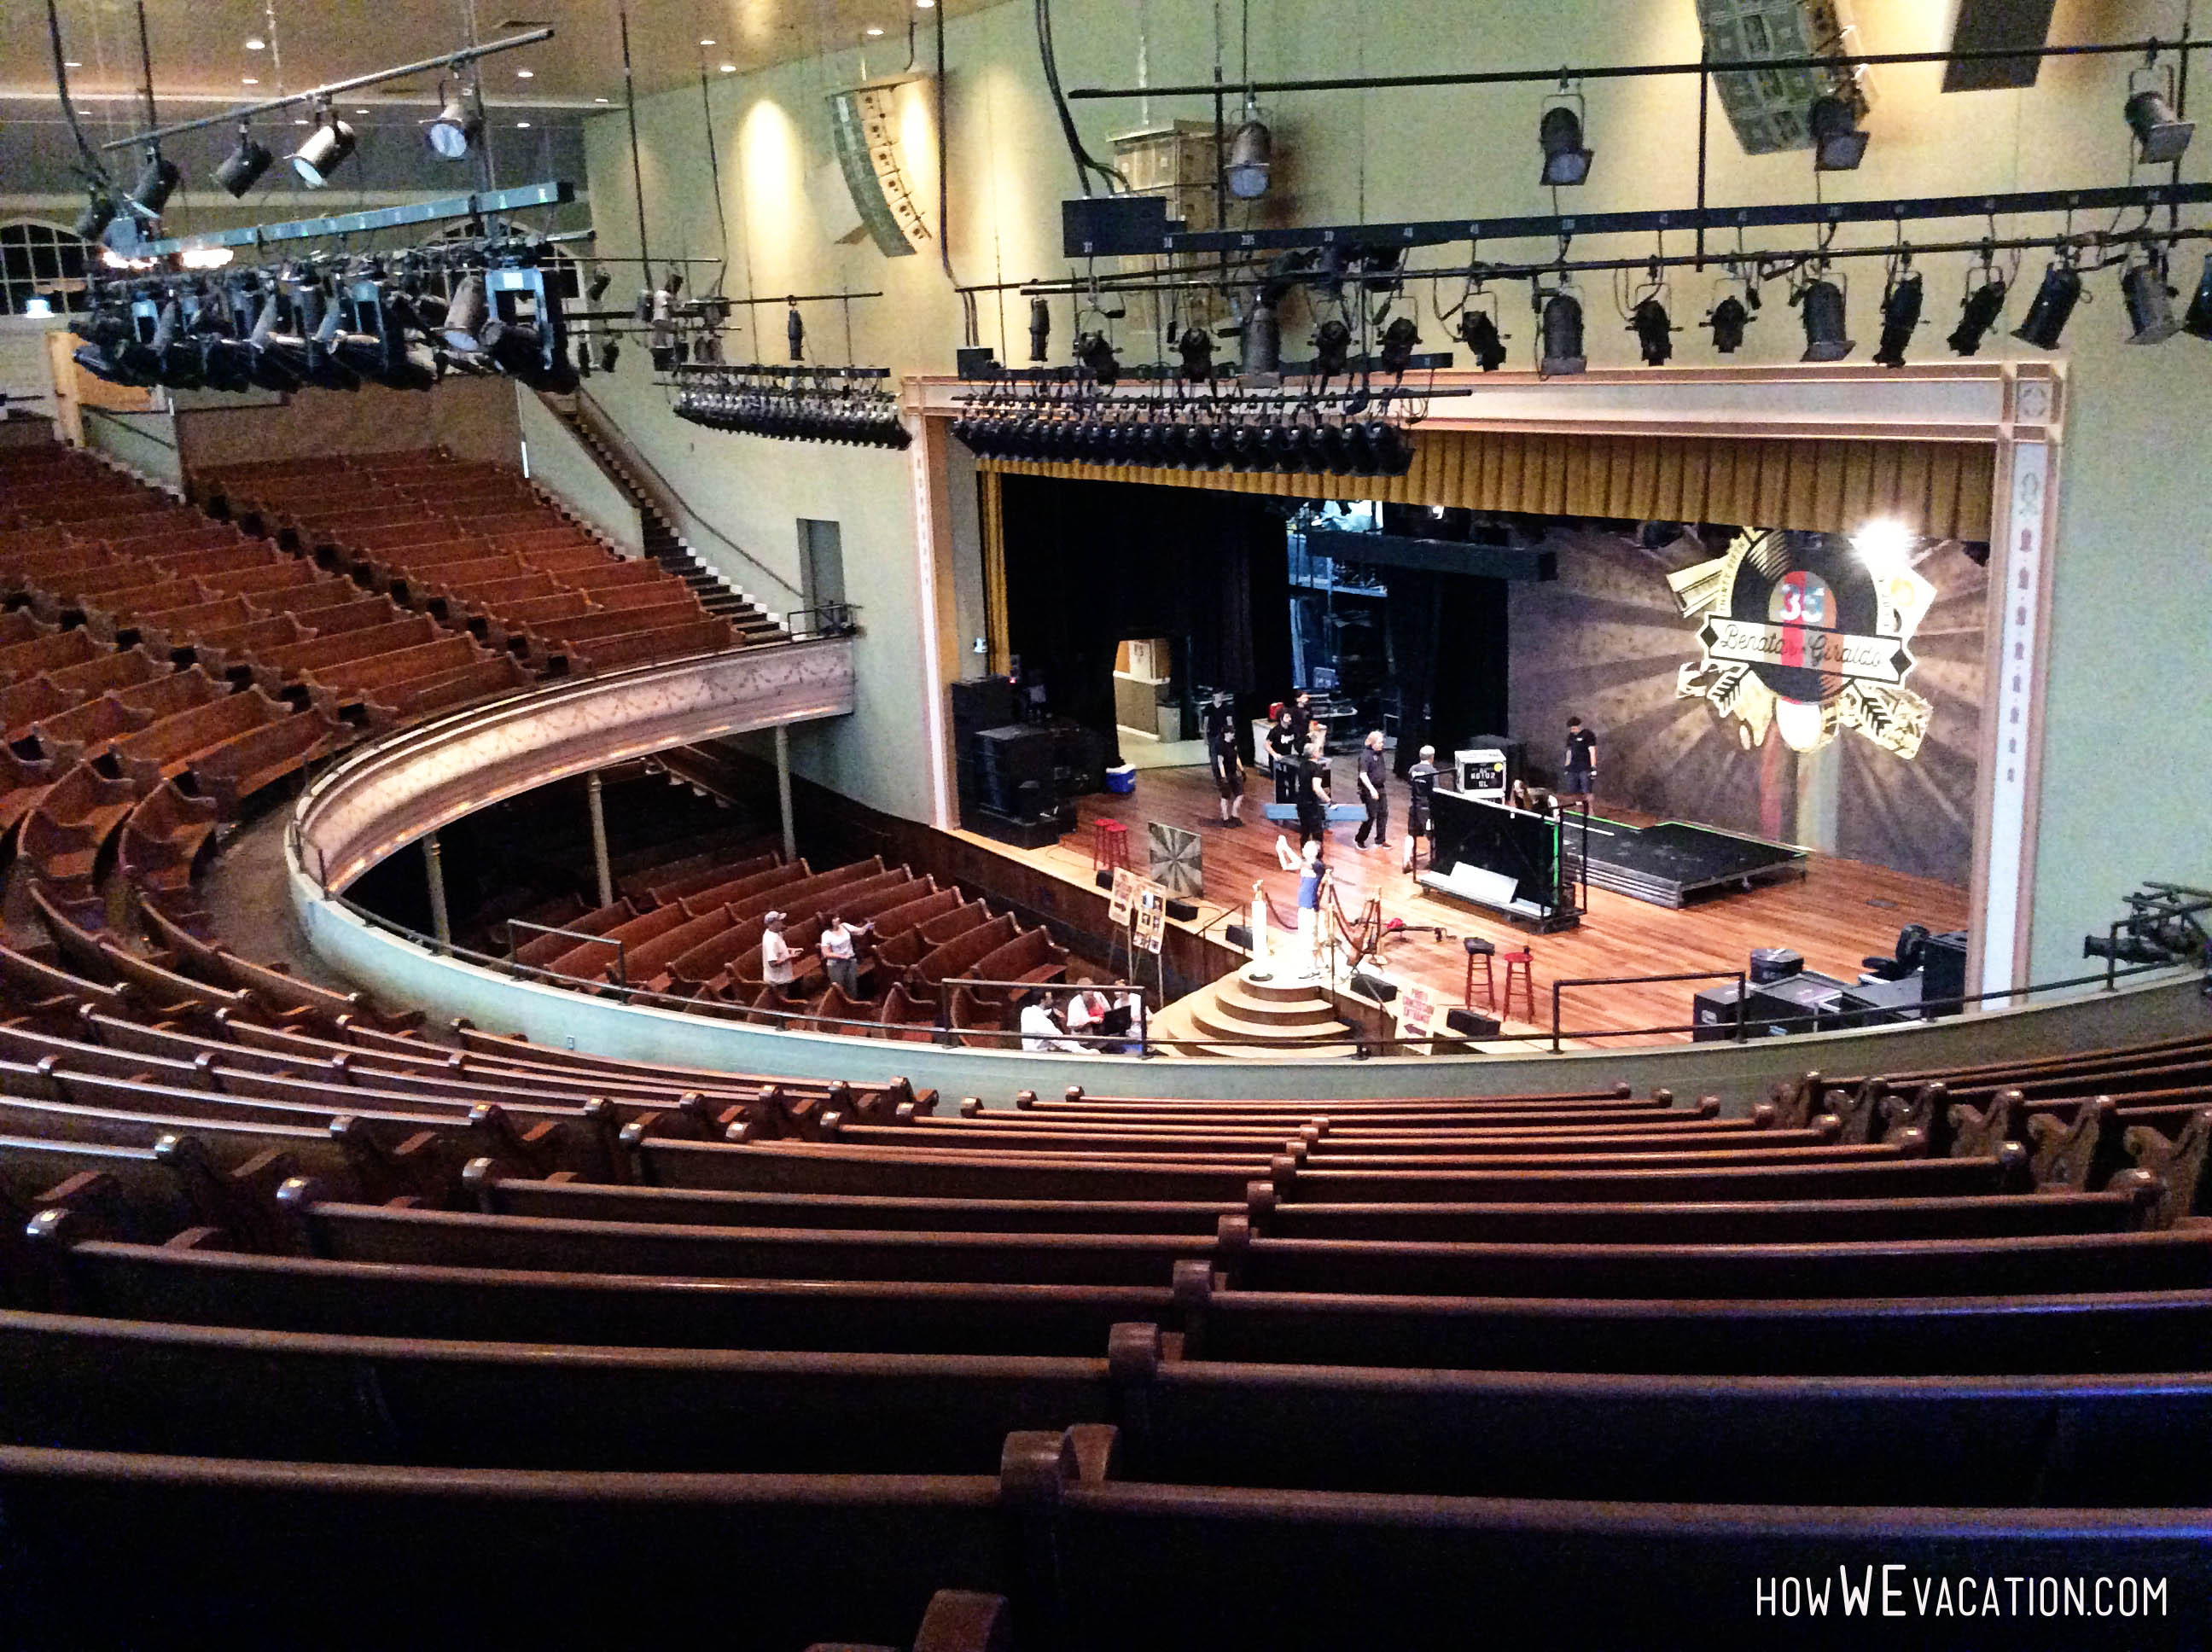 Tour the Ryman Auditorium